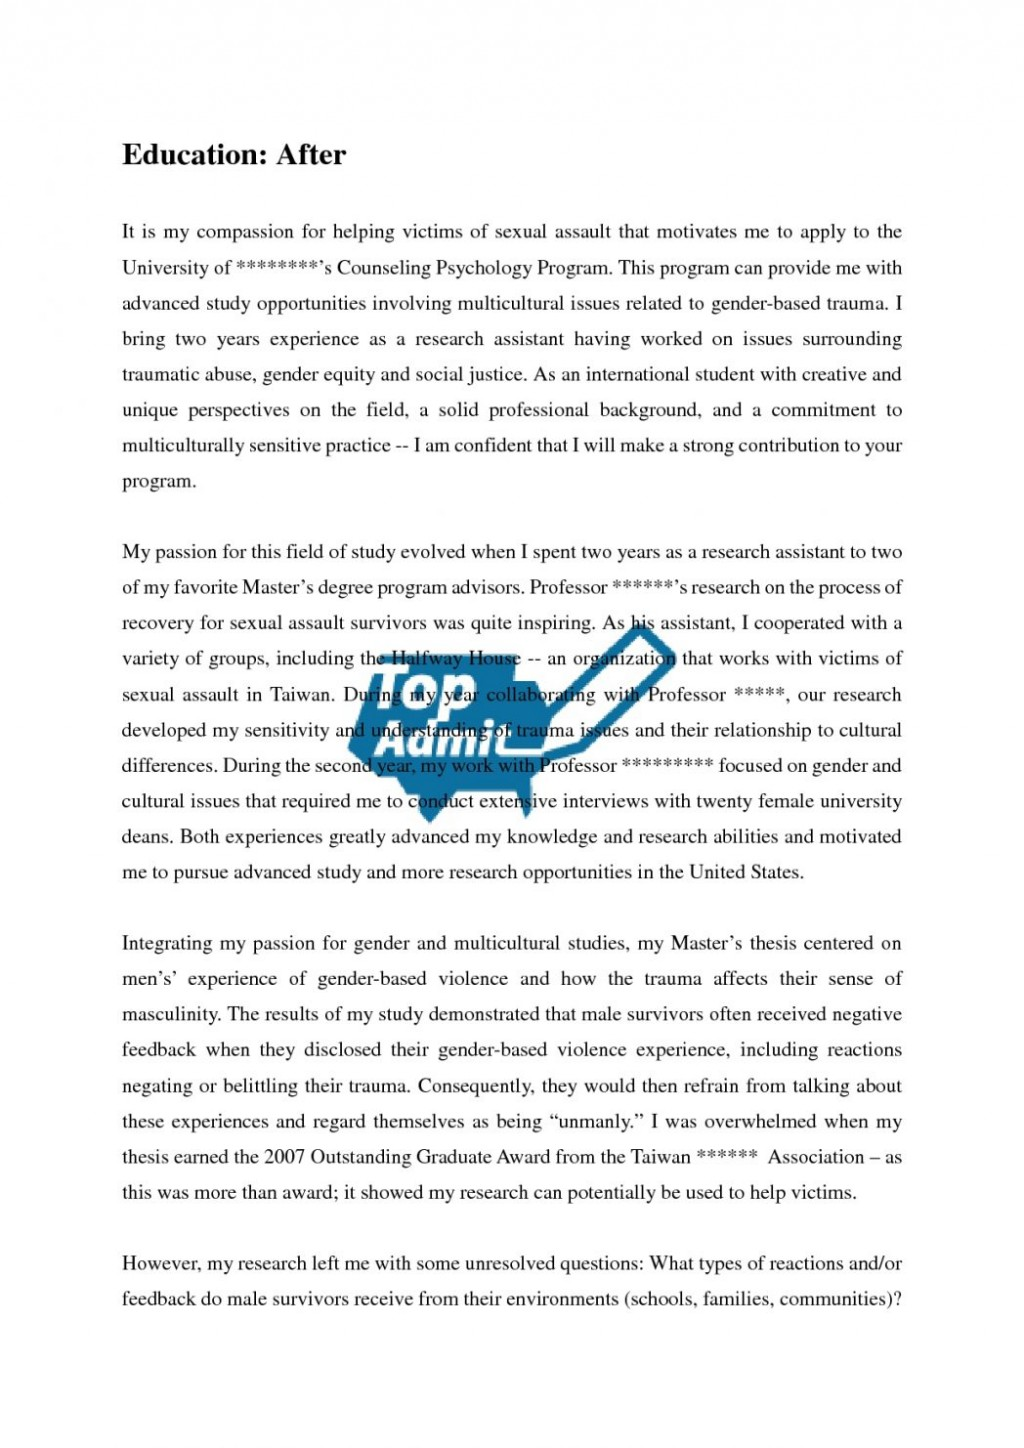 004 Essay On The Most Dangerous Game How To Write An Su Interests Sample Academic Samples 1048x1482 Impressive Study Questions And Answers Discussion Large